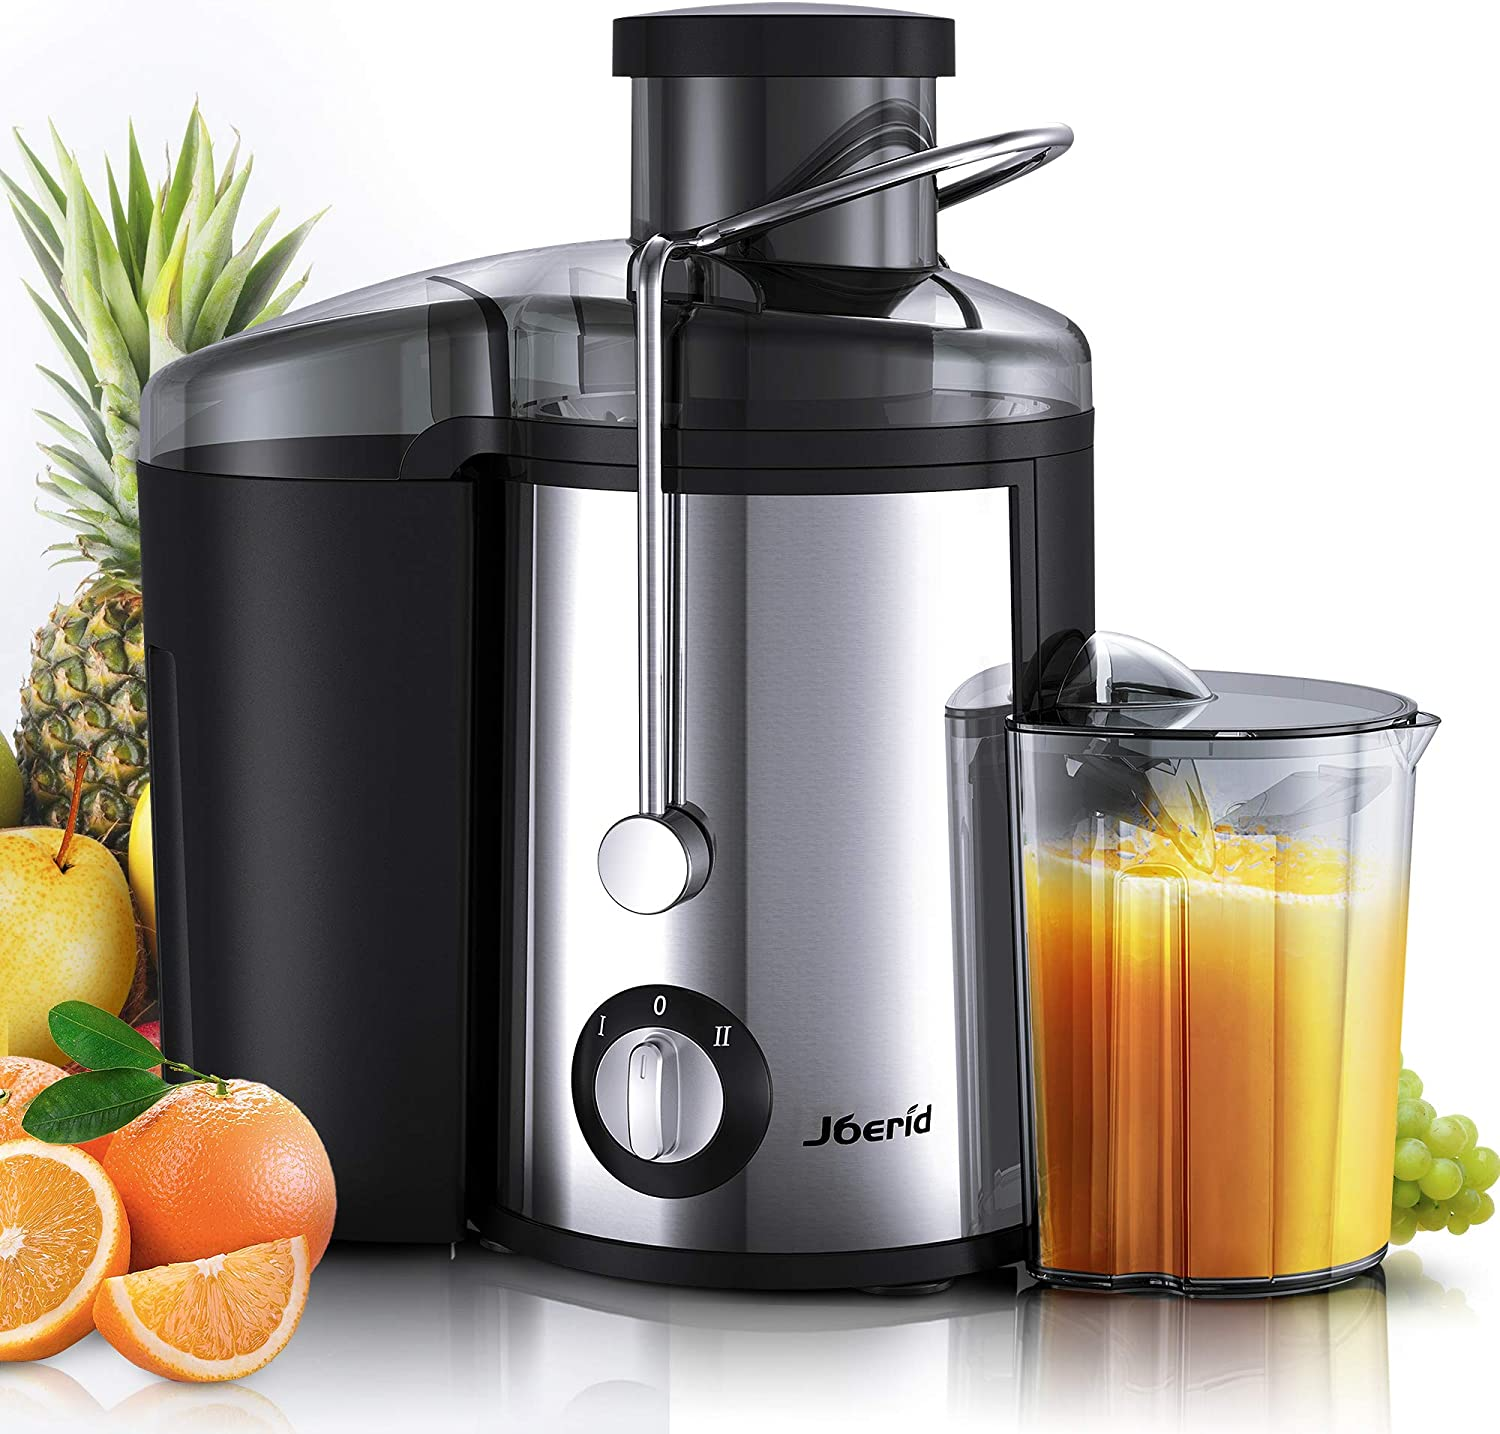 Joerid Juicer, 2019 Upgrade Centrifugal Juicer Machine, Juice Extractor with Spout Adjustable, Lighter Powerful, Easy to Clean BPA-Free, Dishwasher Safe, Included Brush Black